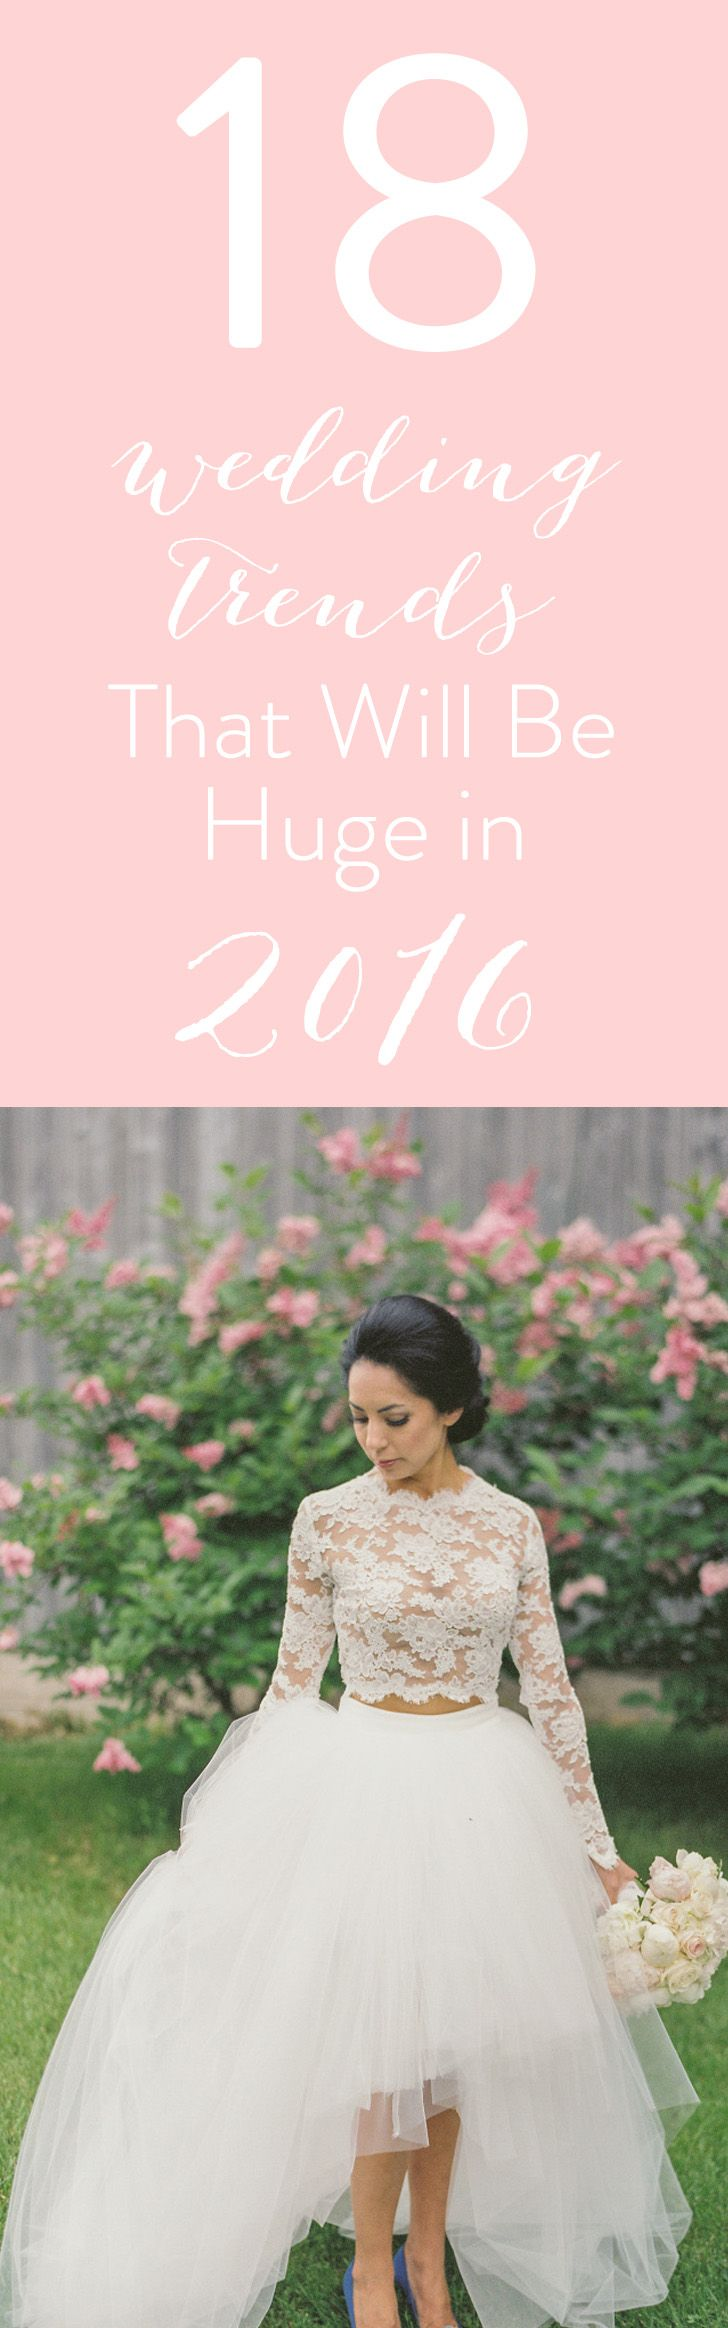 Wedding Trends to Watch for in 2016 | Pinterest | Boda, Novios y ...